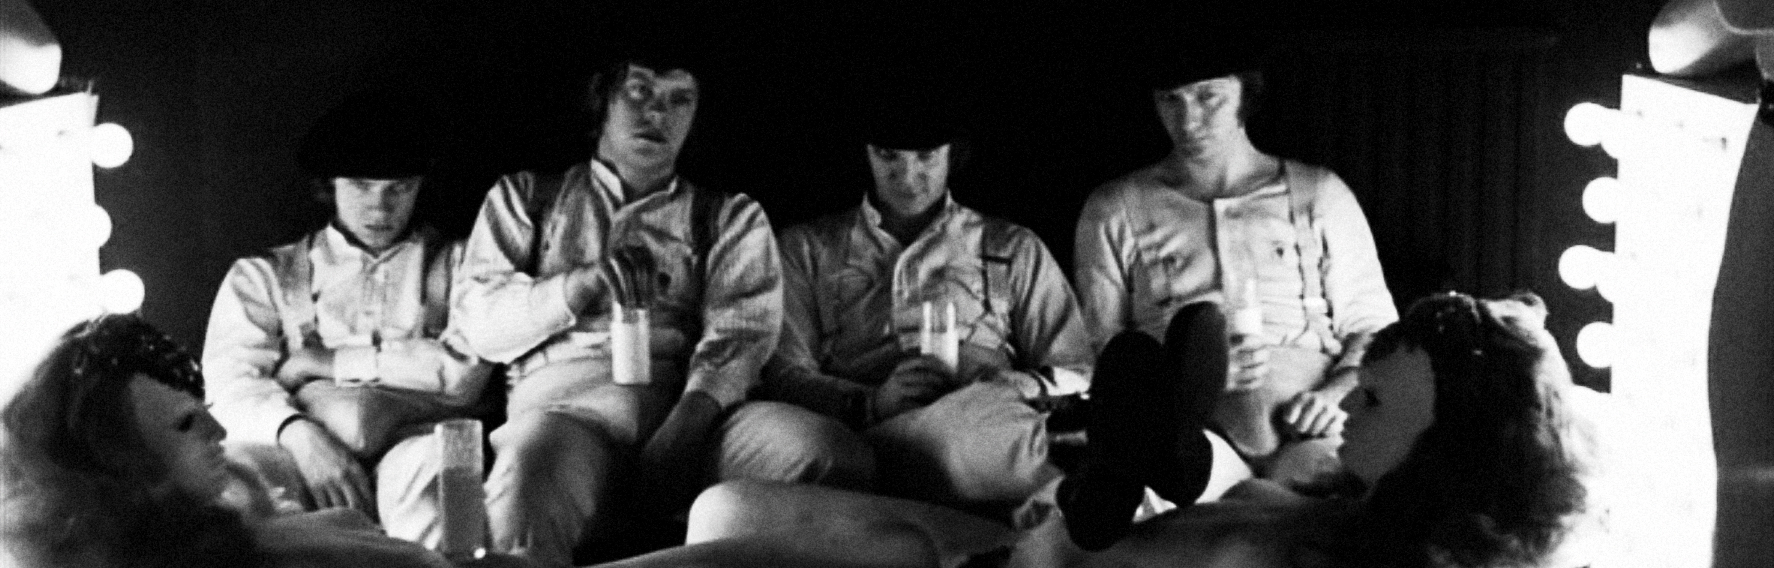 a clockwork orange film analysis A clockwork orange is the greatest film of the 1970s and the high point of kubrick's illustrious career it mesmerises from start to finish.